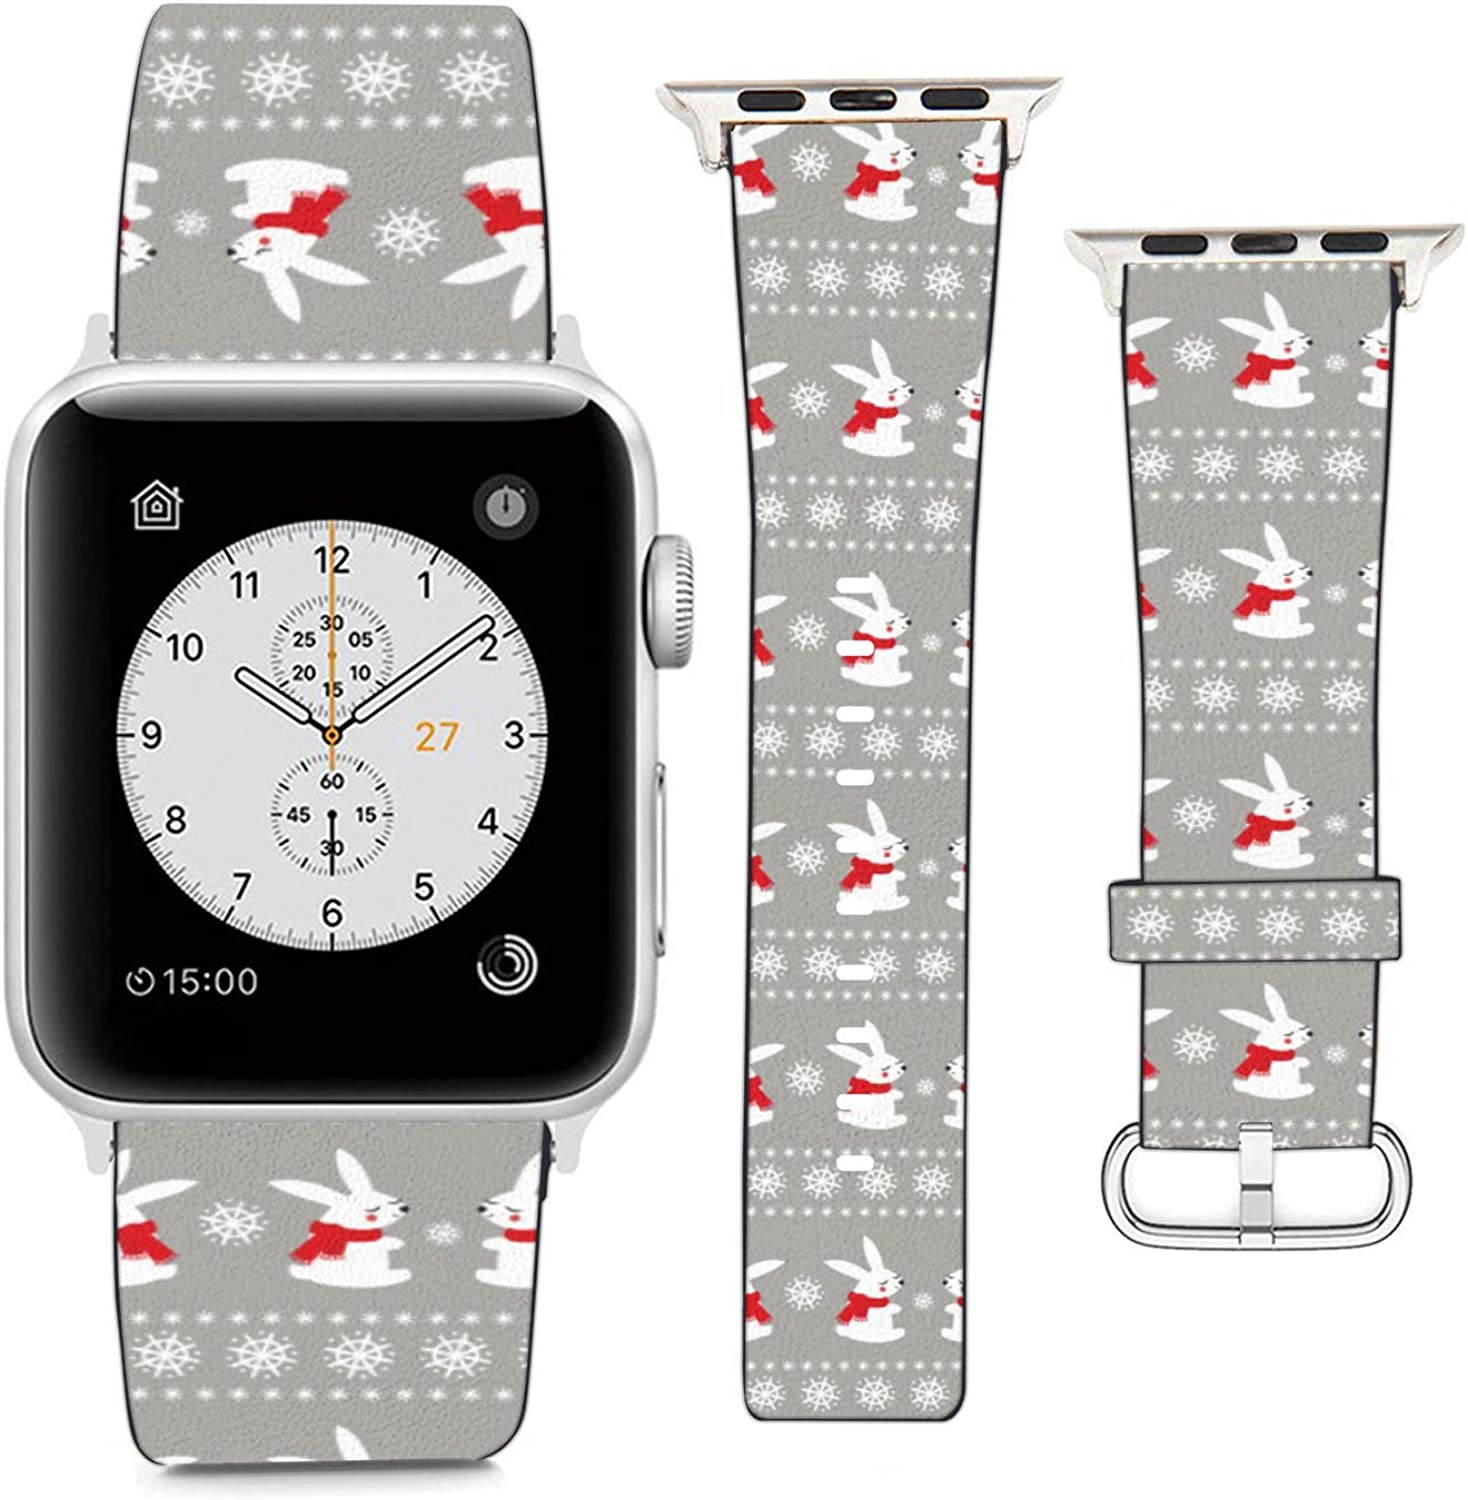 Compatible with Apple Watch Wristband 42mm 44mm, (Cute Baby Bunny Rabbits with Snowflakes Pattern) PU Leather Band Replacement Strap for iWatch Series 5 4 3 2 1